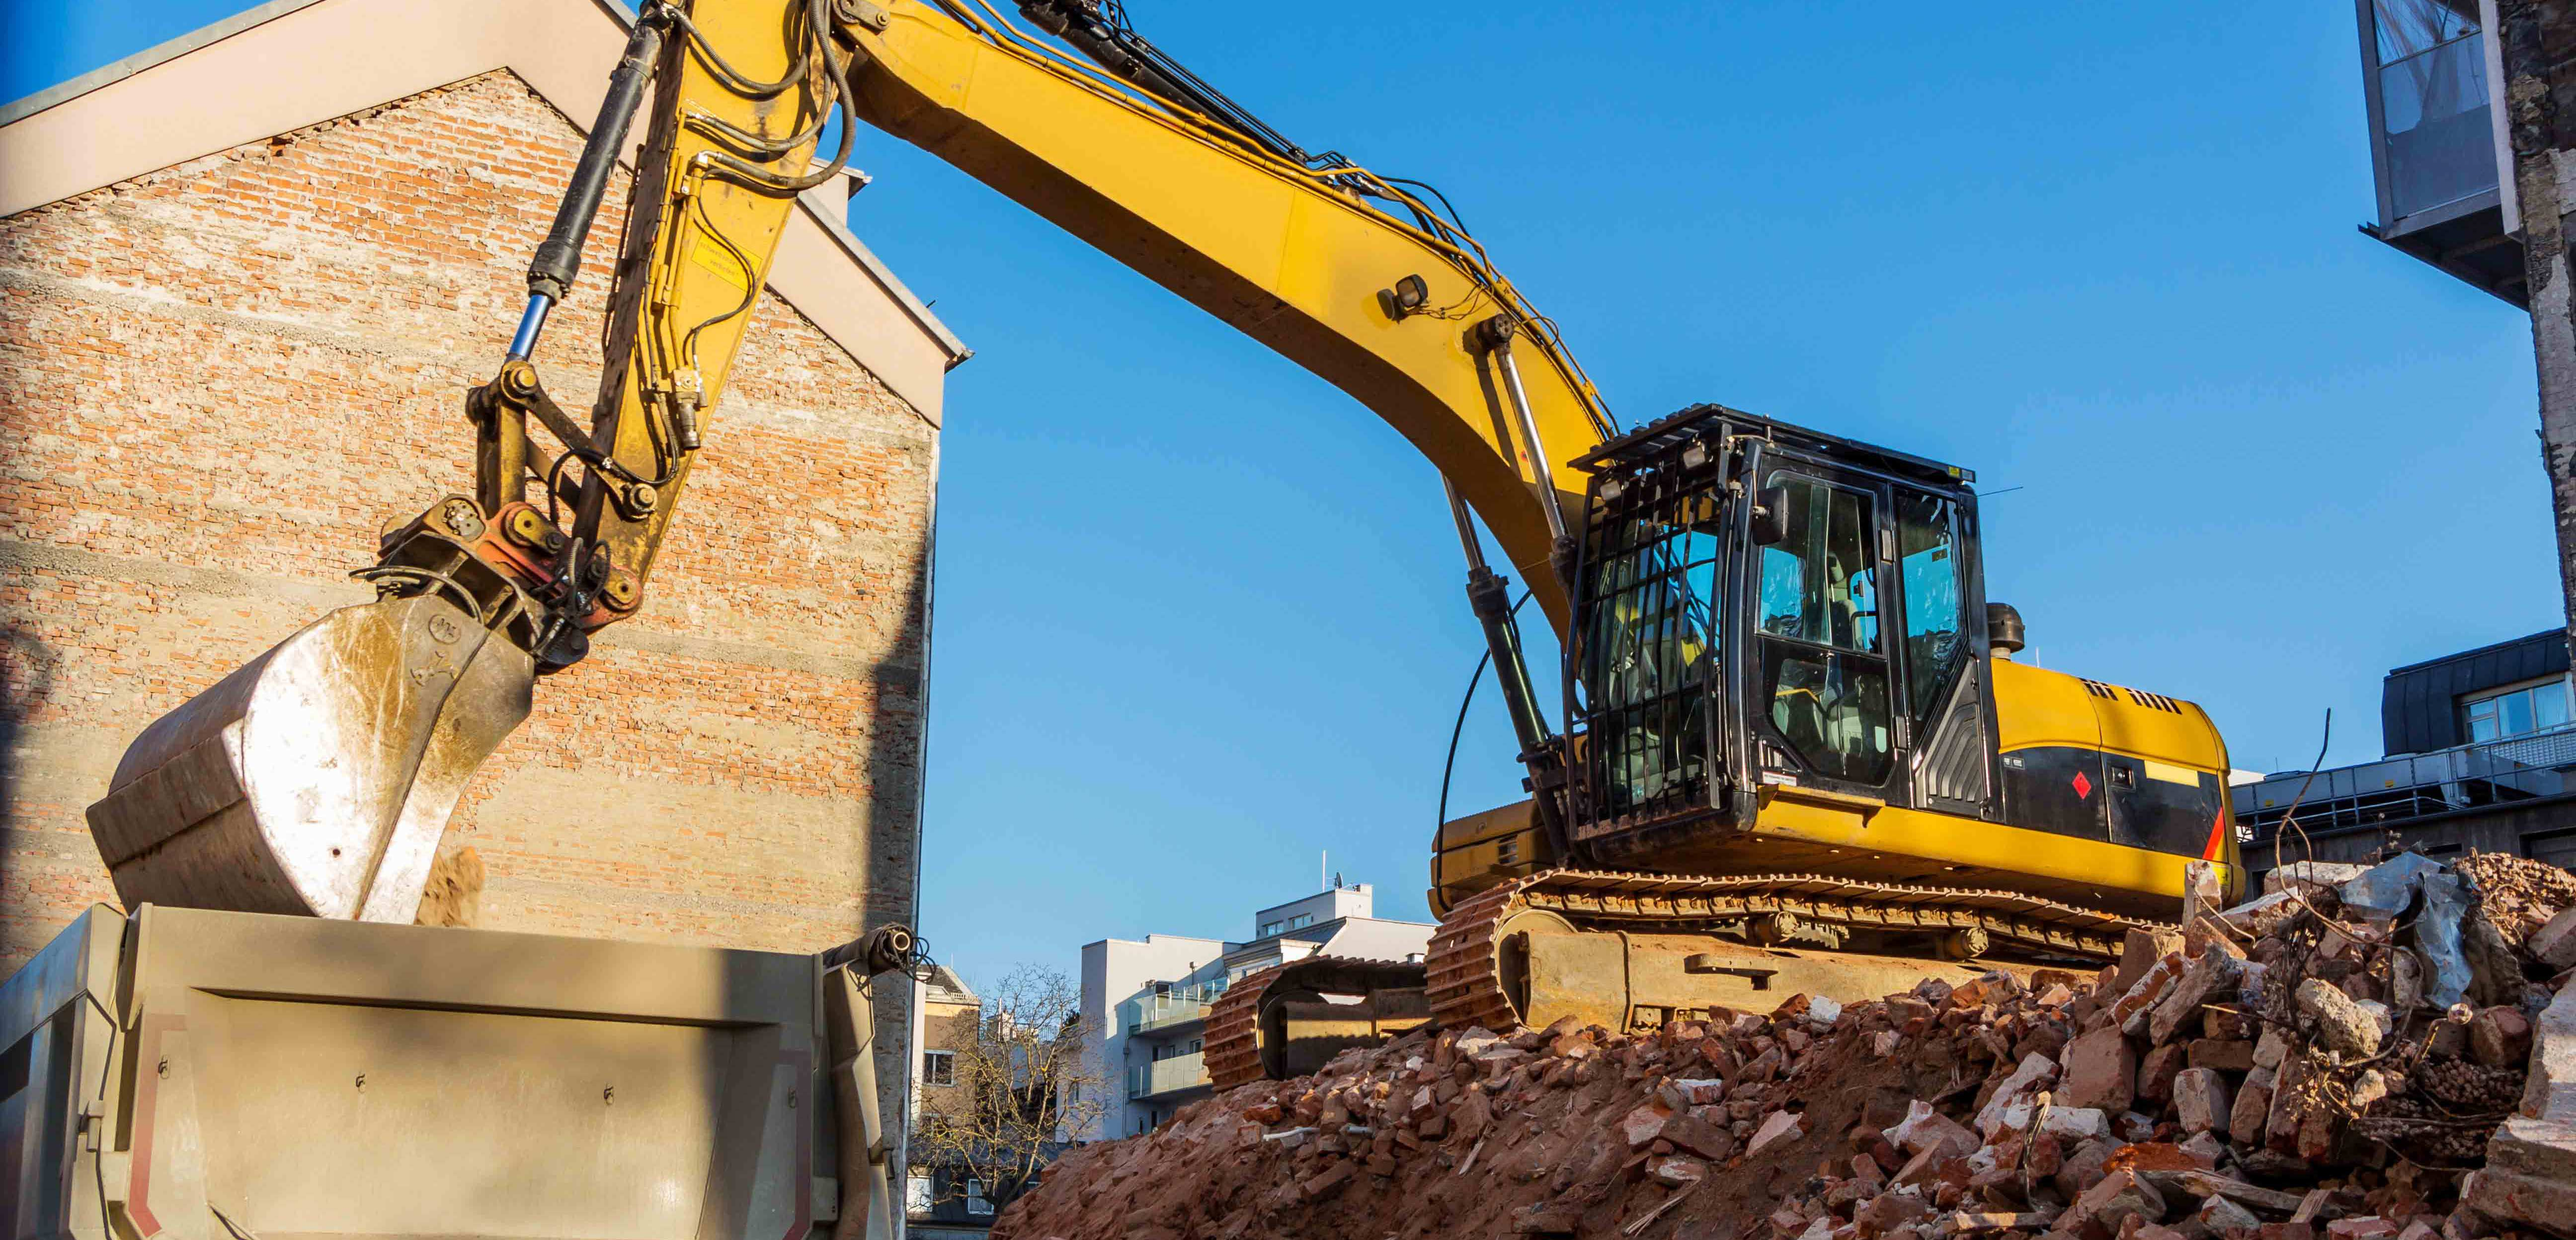 Excavation, Dirt removal and Equipment rental